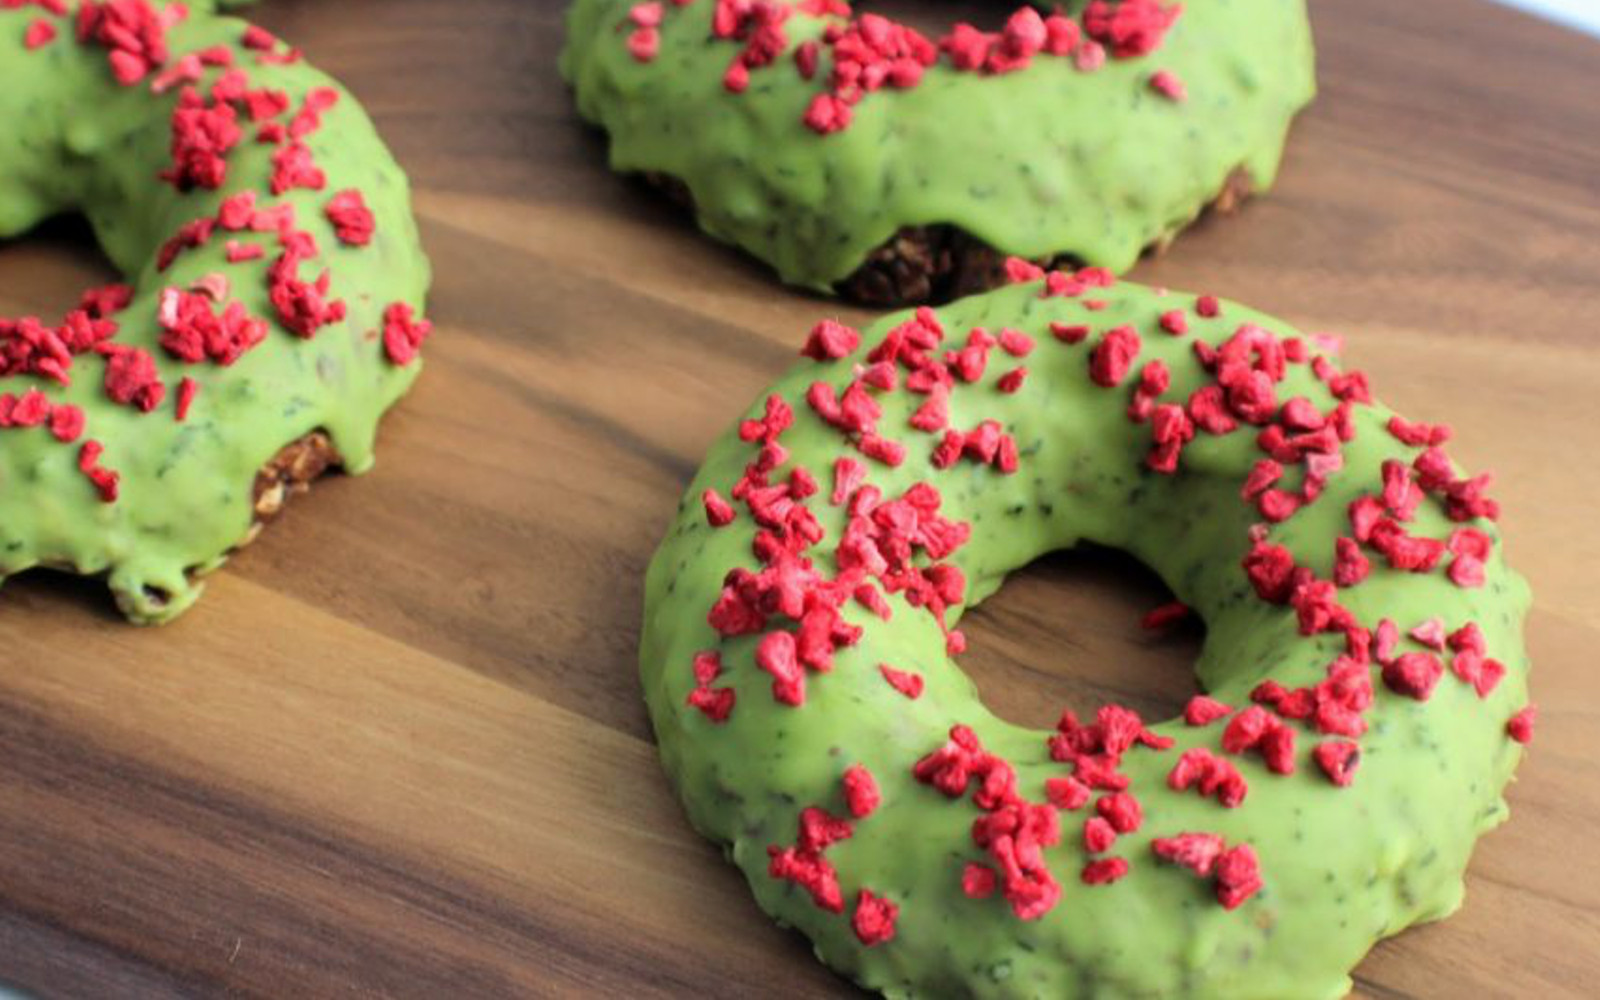 Vegan Gluten-Free Raw Chocolate Doughnuts With White Chocolate Matcha Glaze with red sprinkles